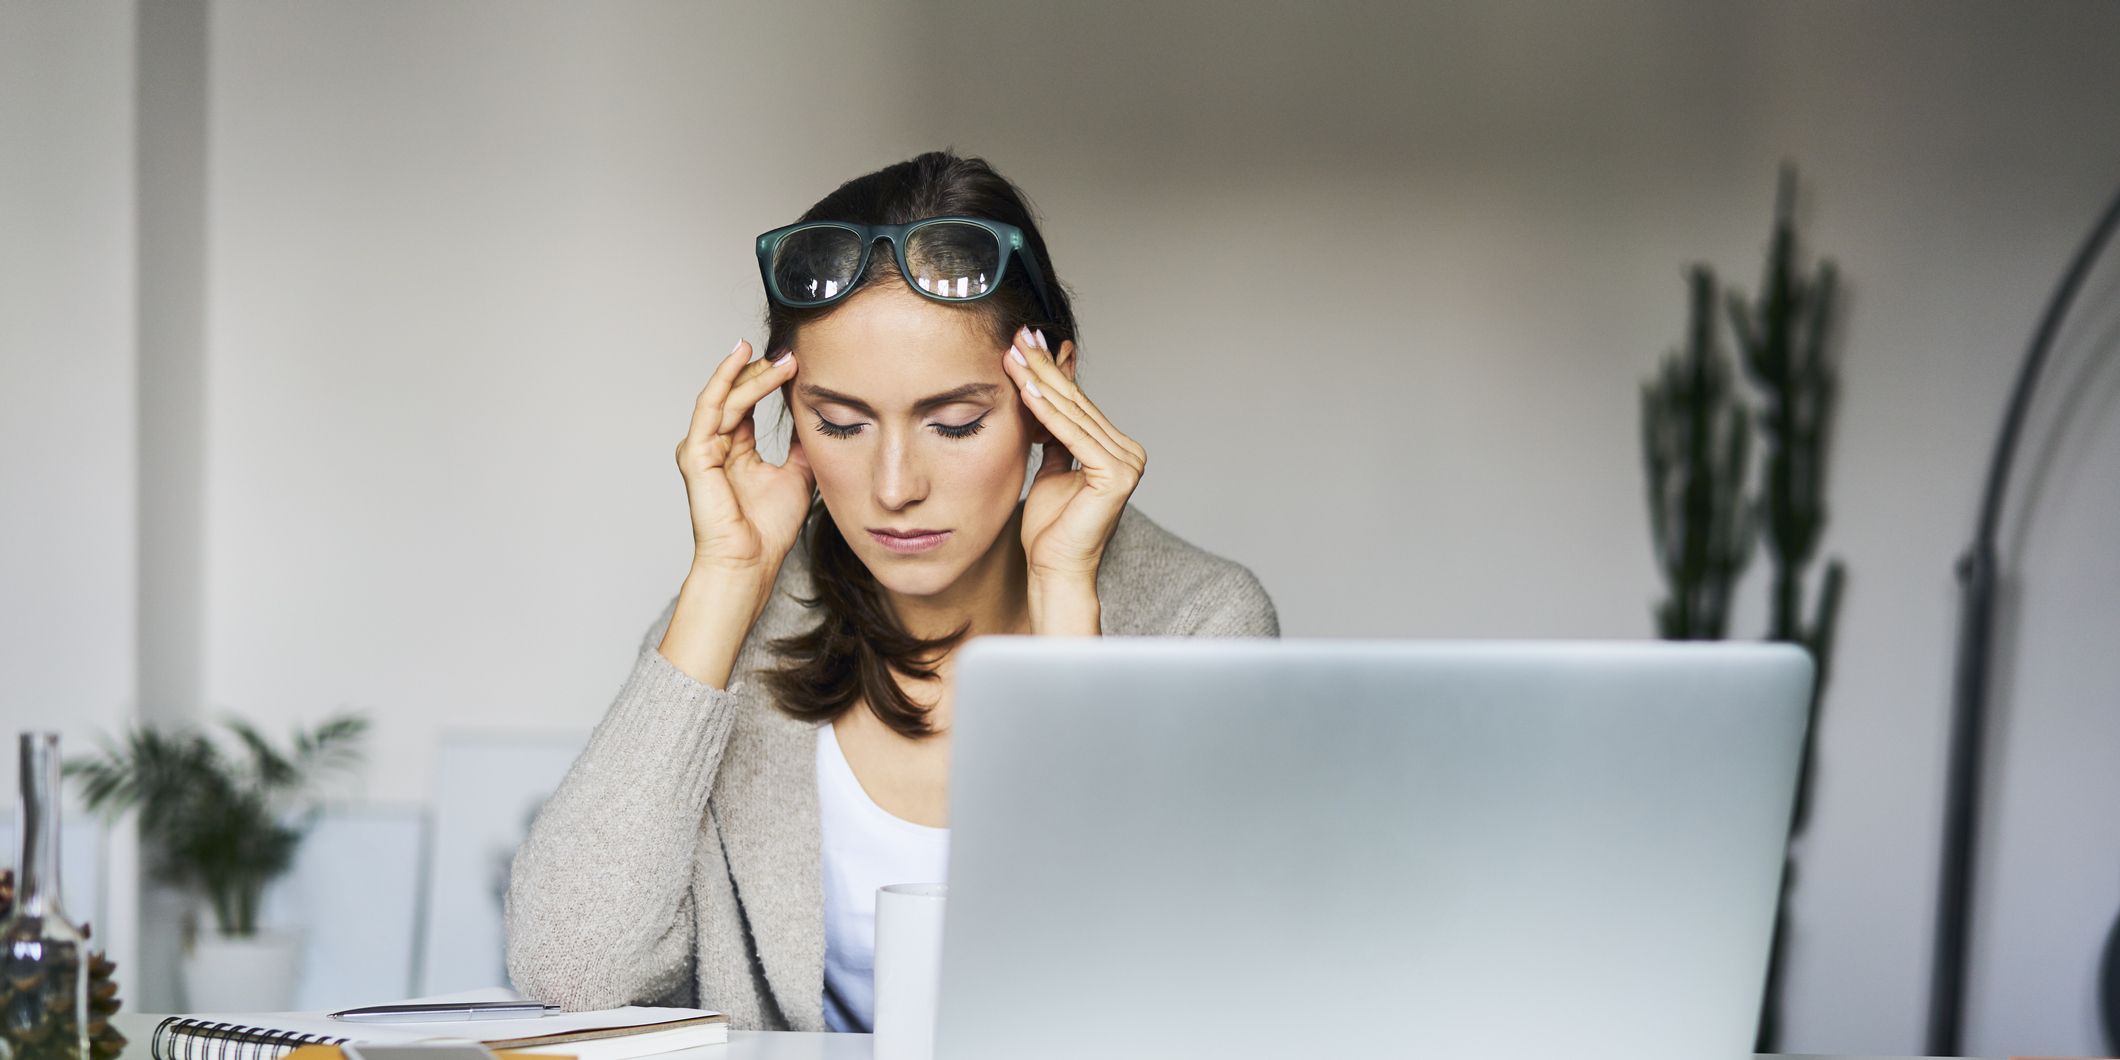 Young woman at home with laptop on desk touching her temples